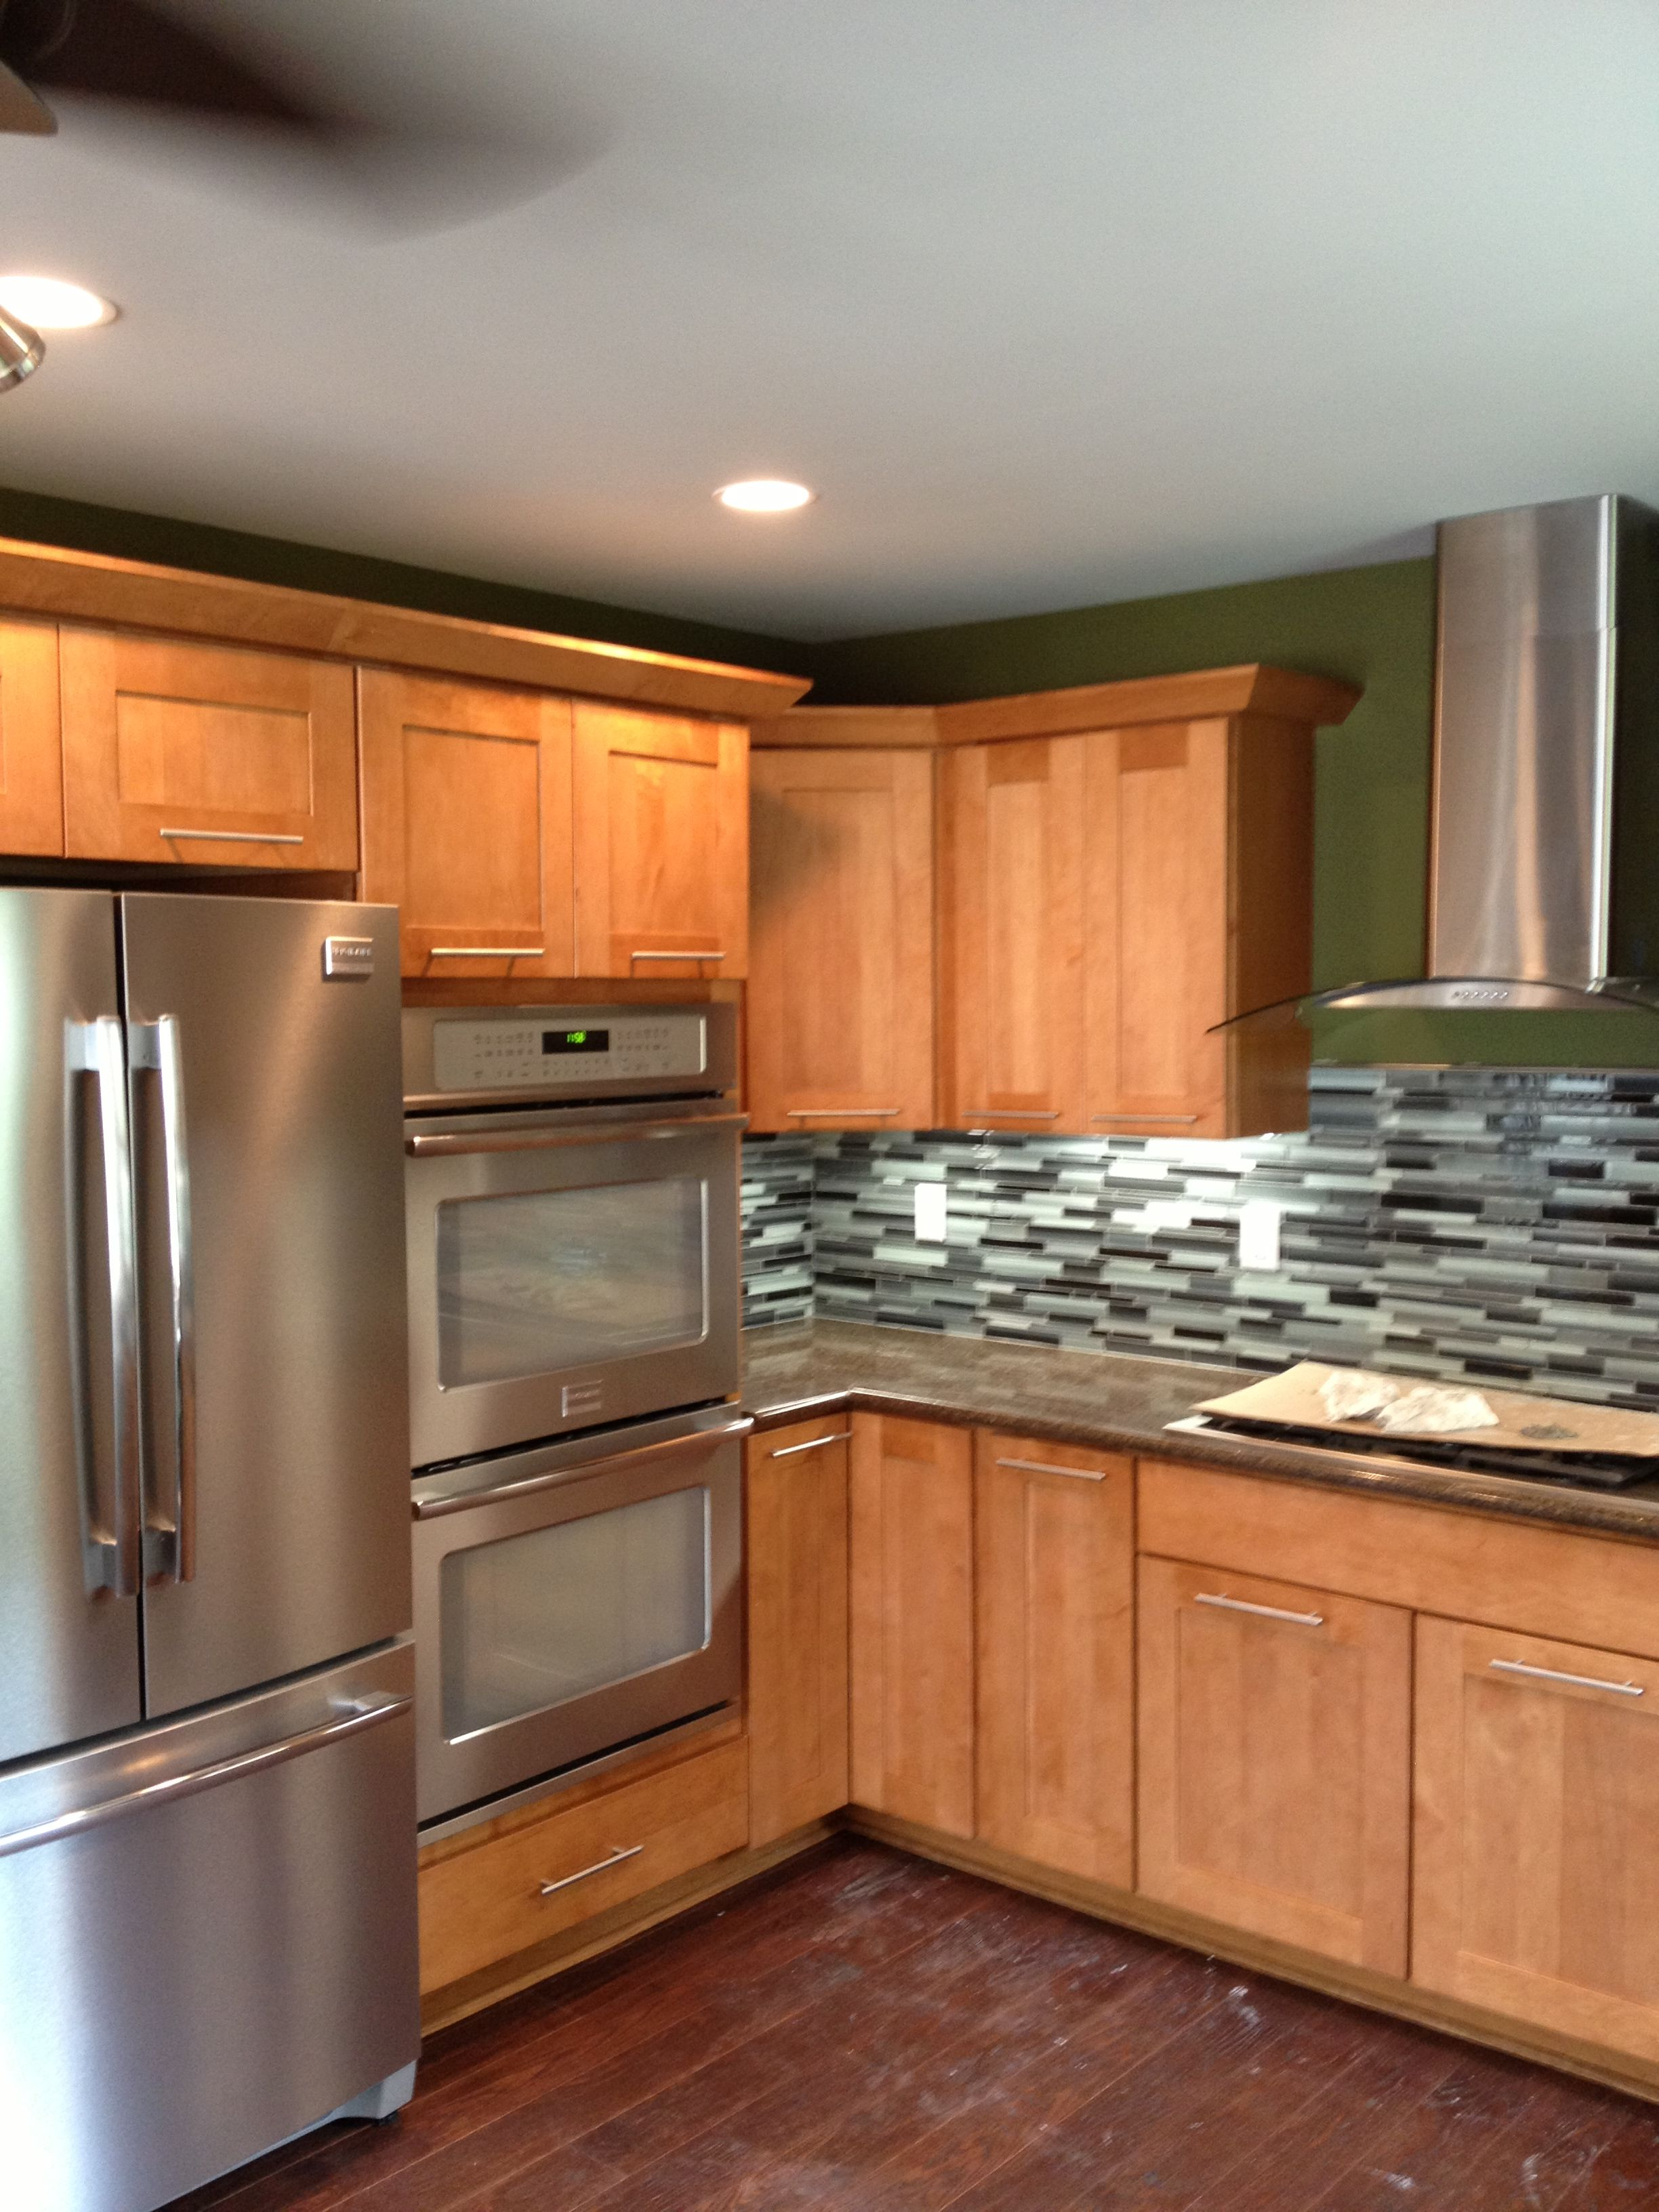 Gentil Kitchen Remodel After Fire Loss Completed By J. J. Swartz Company